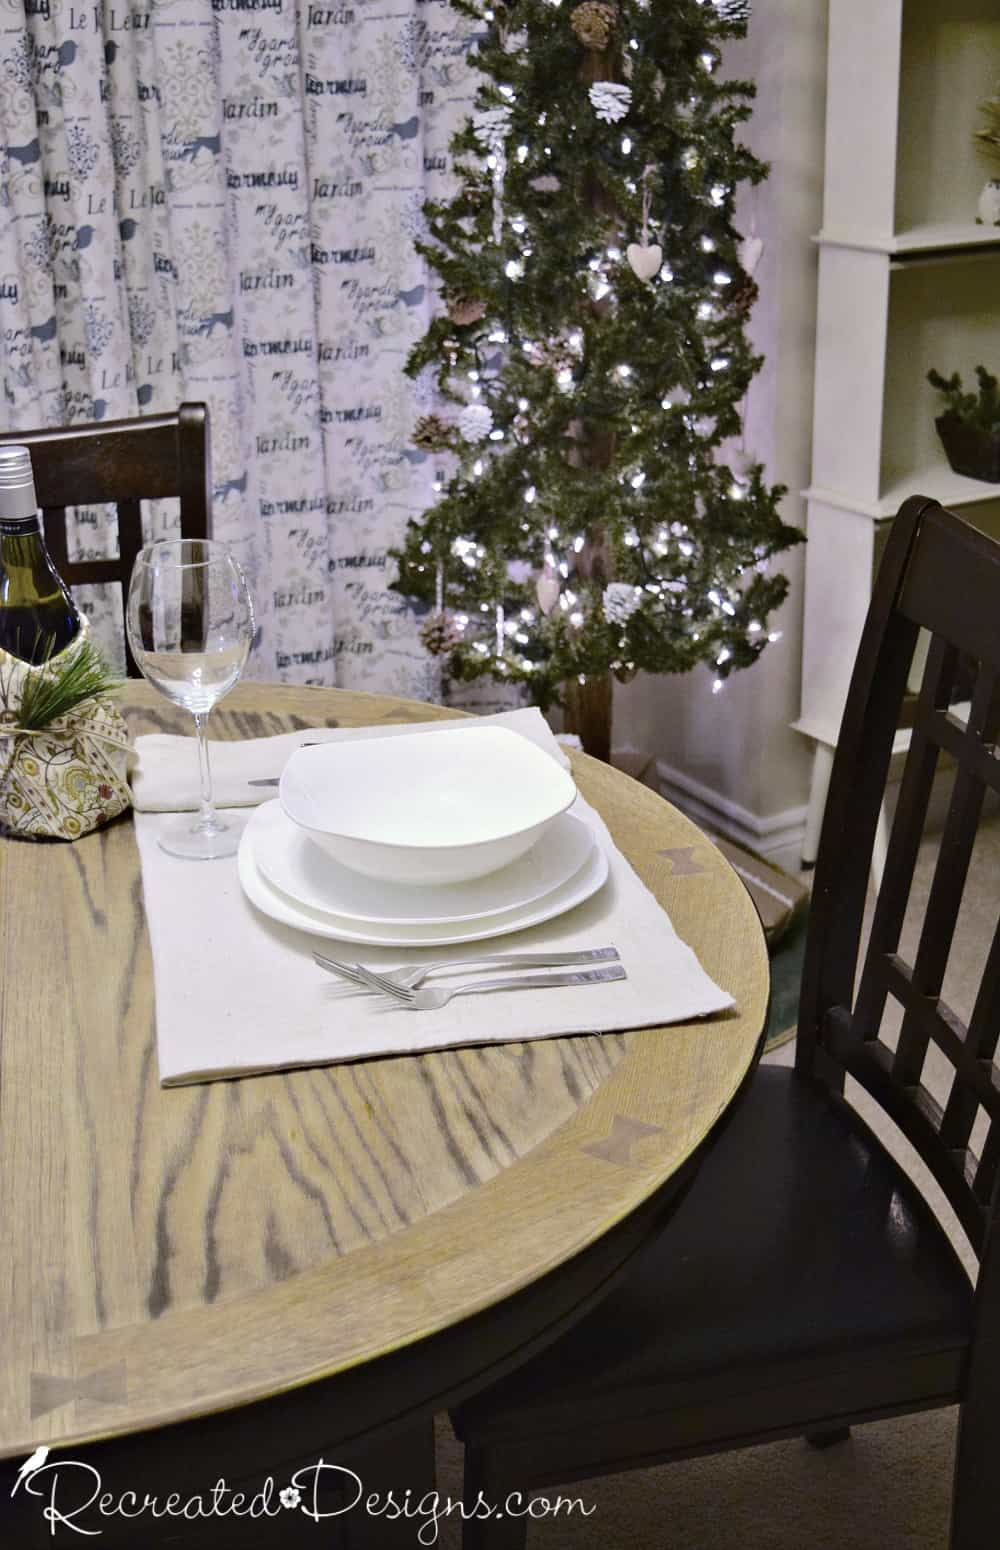 Dining Room Place Setting Christmas Tree White Dishes Recreateddesigns Recreated Designs